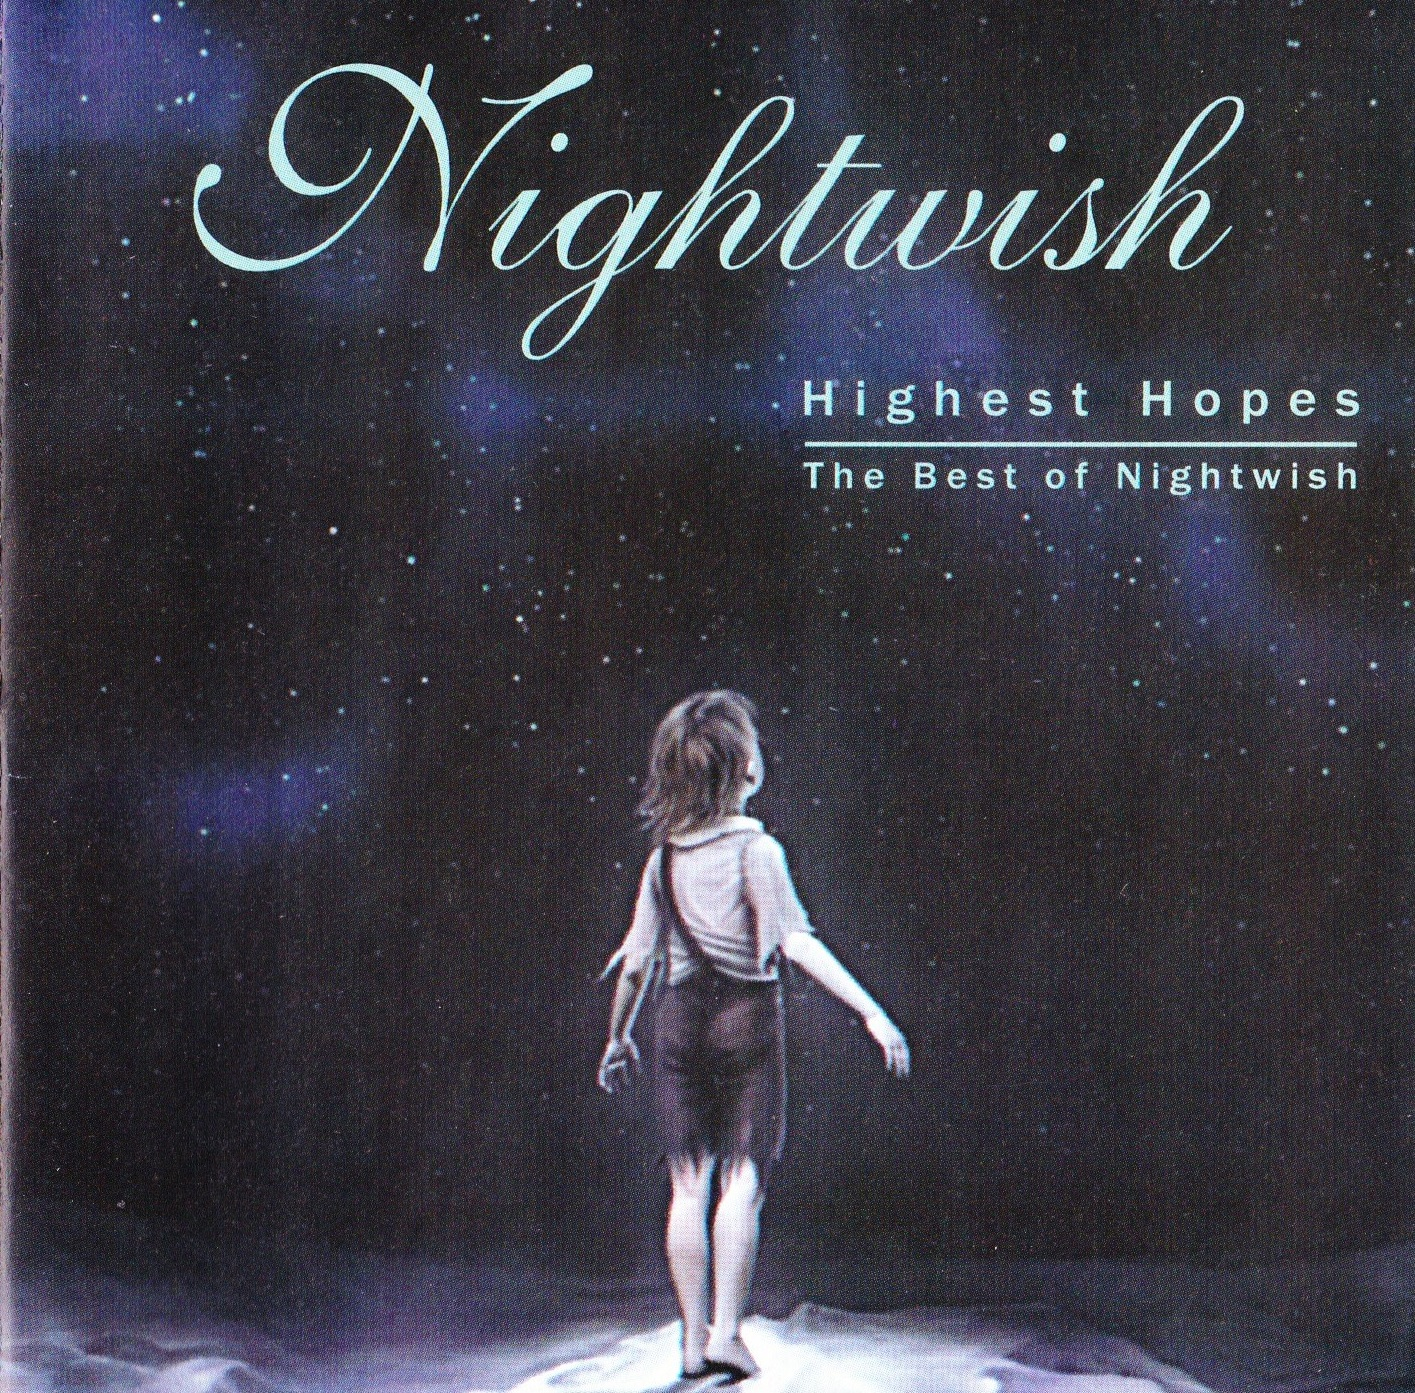 Nightwish — Highest Hopes — The Best of Nightwish (2005)